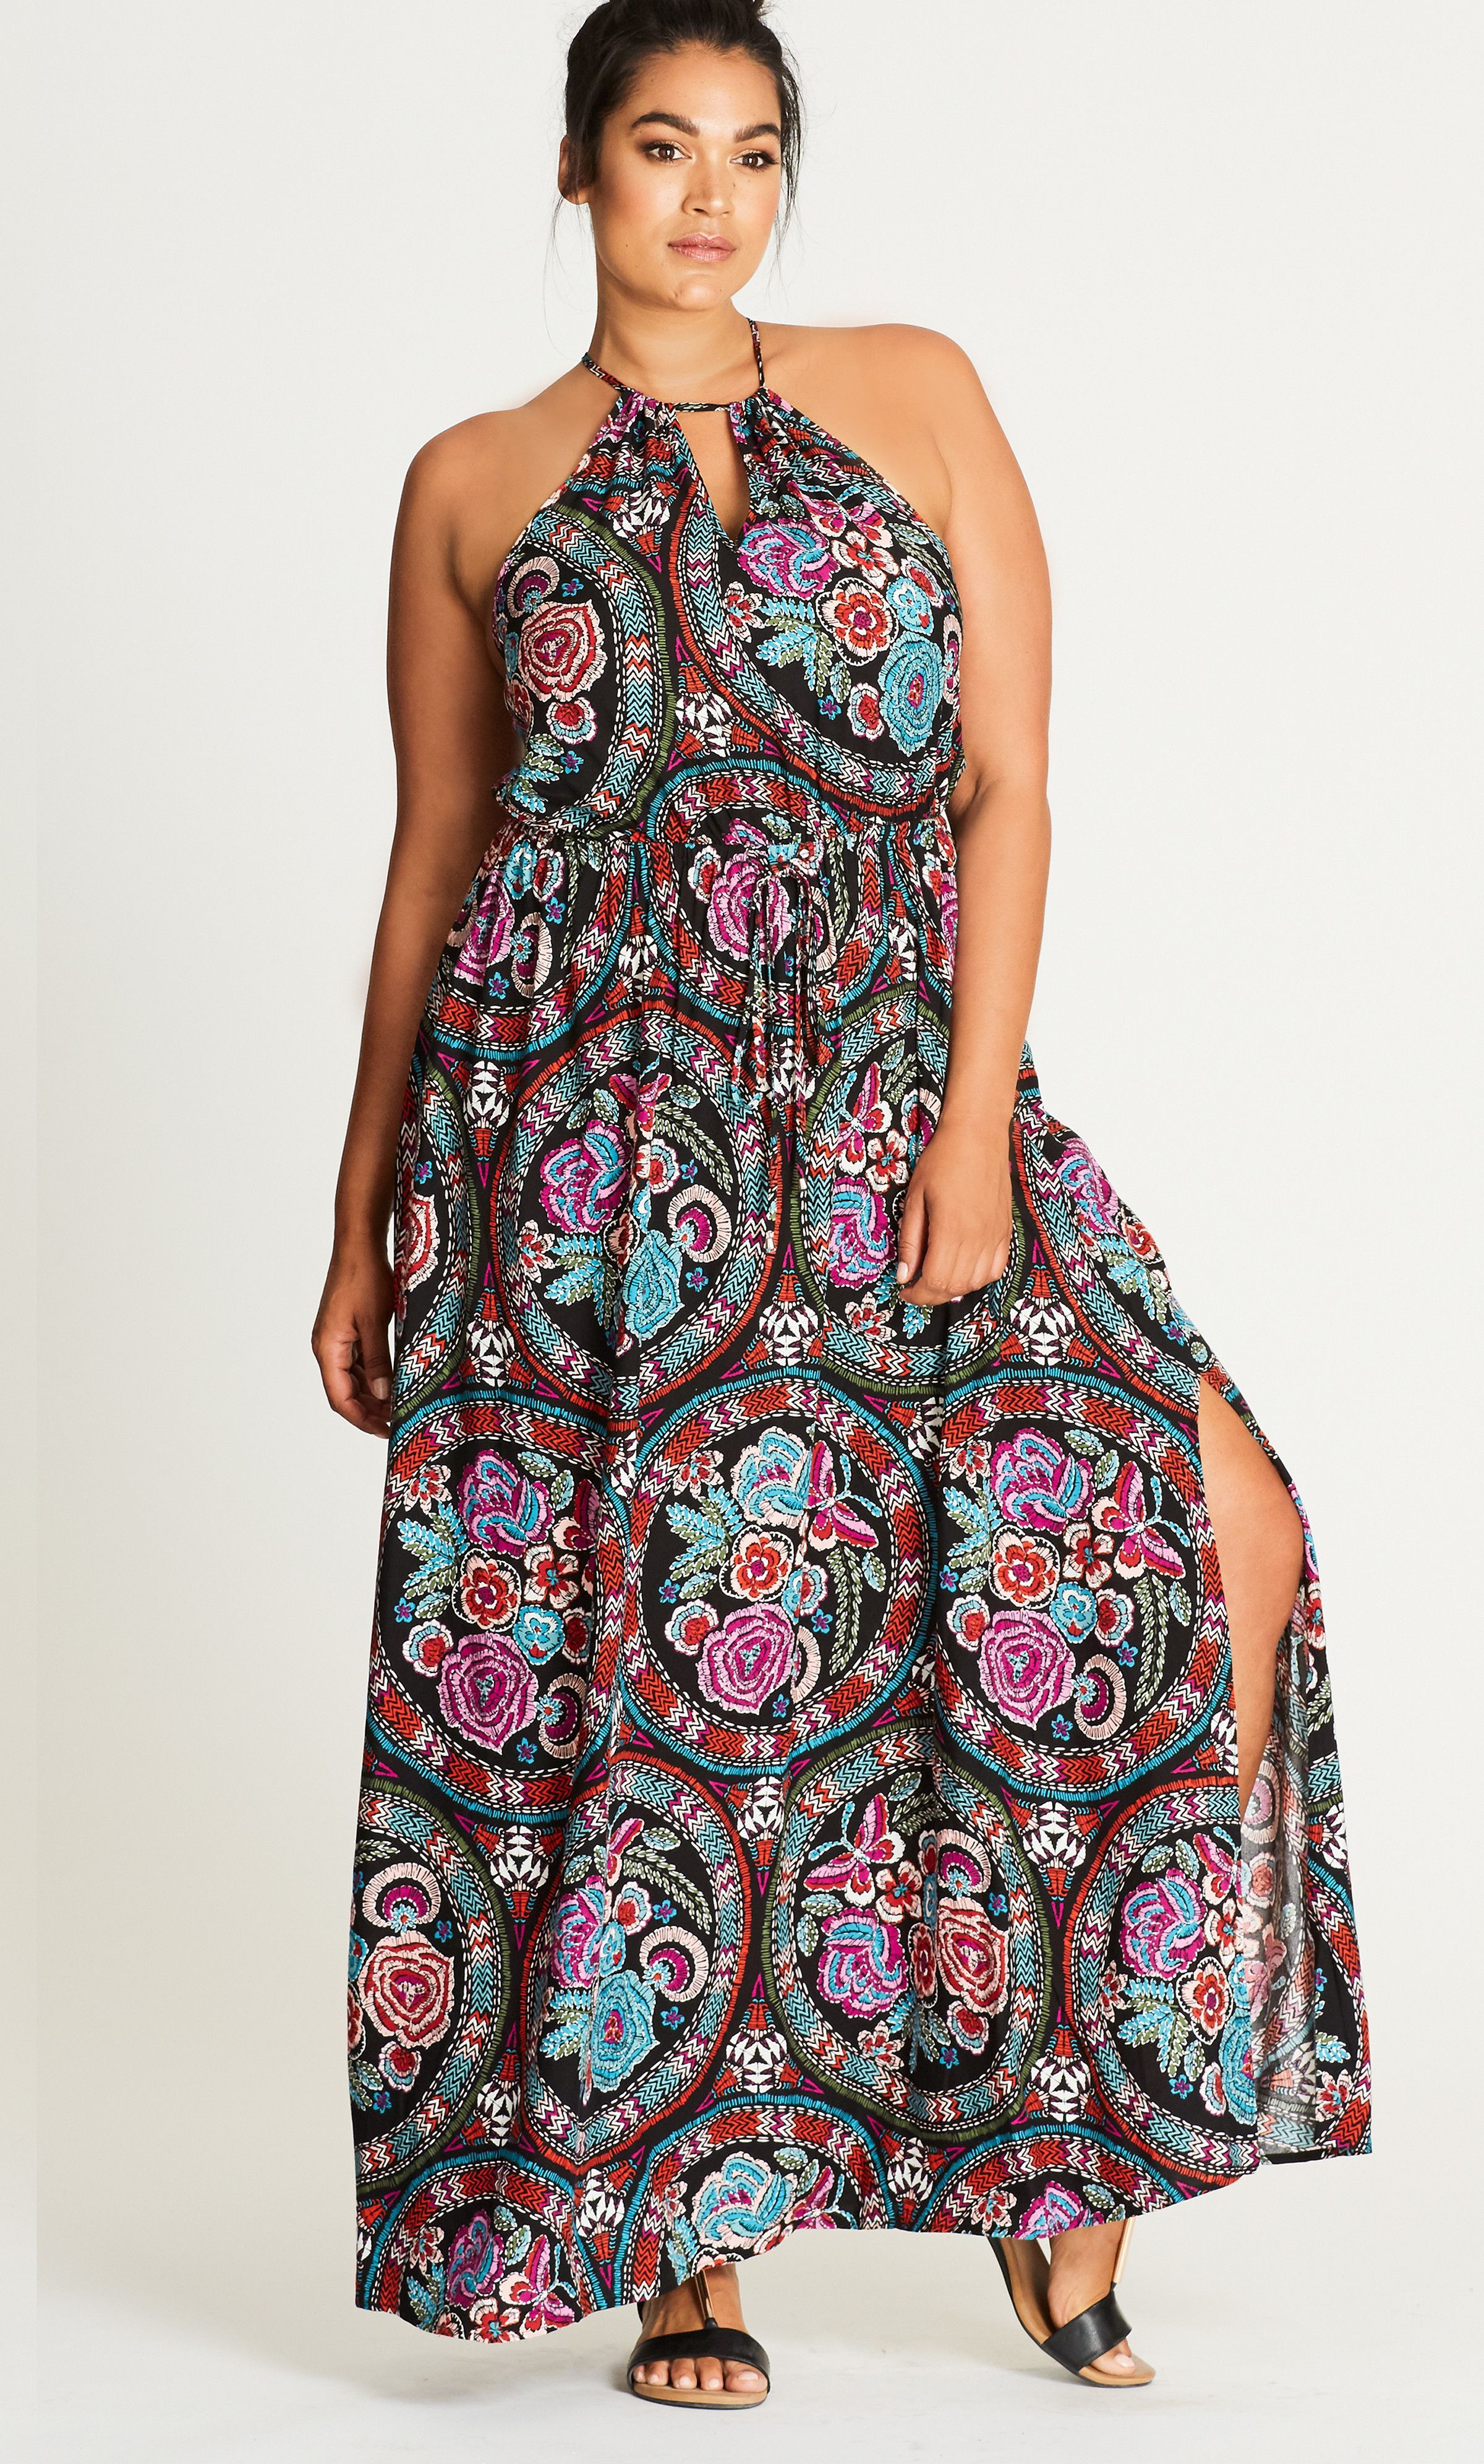 Folklore printed maxi dress very stylish in pinterest